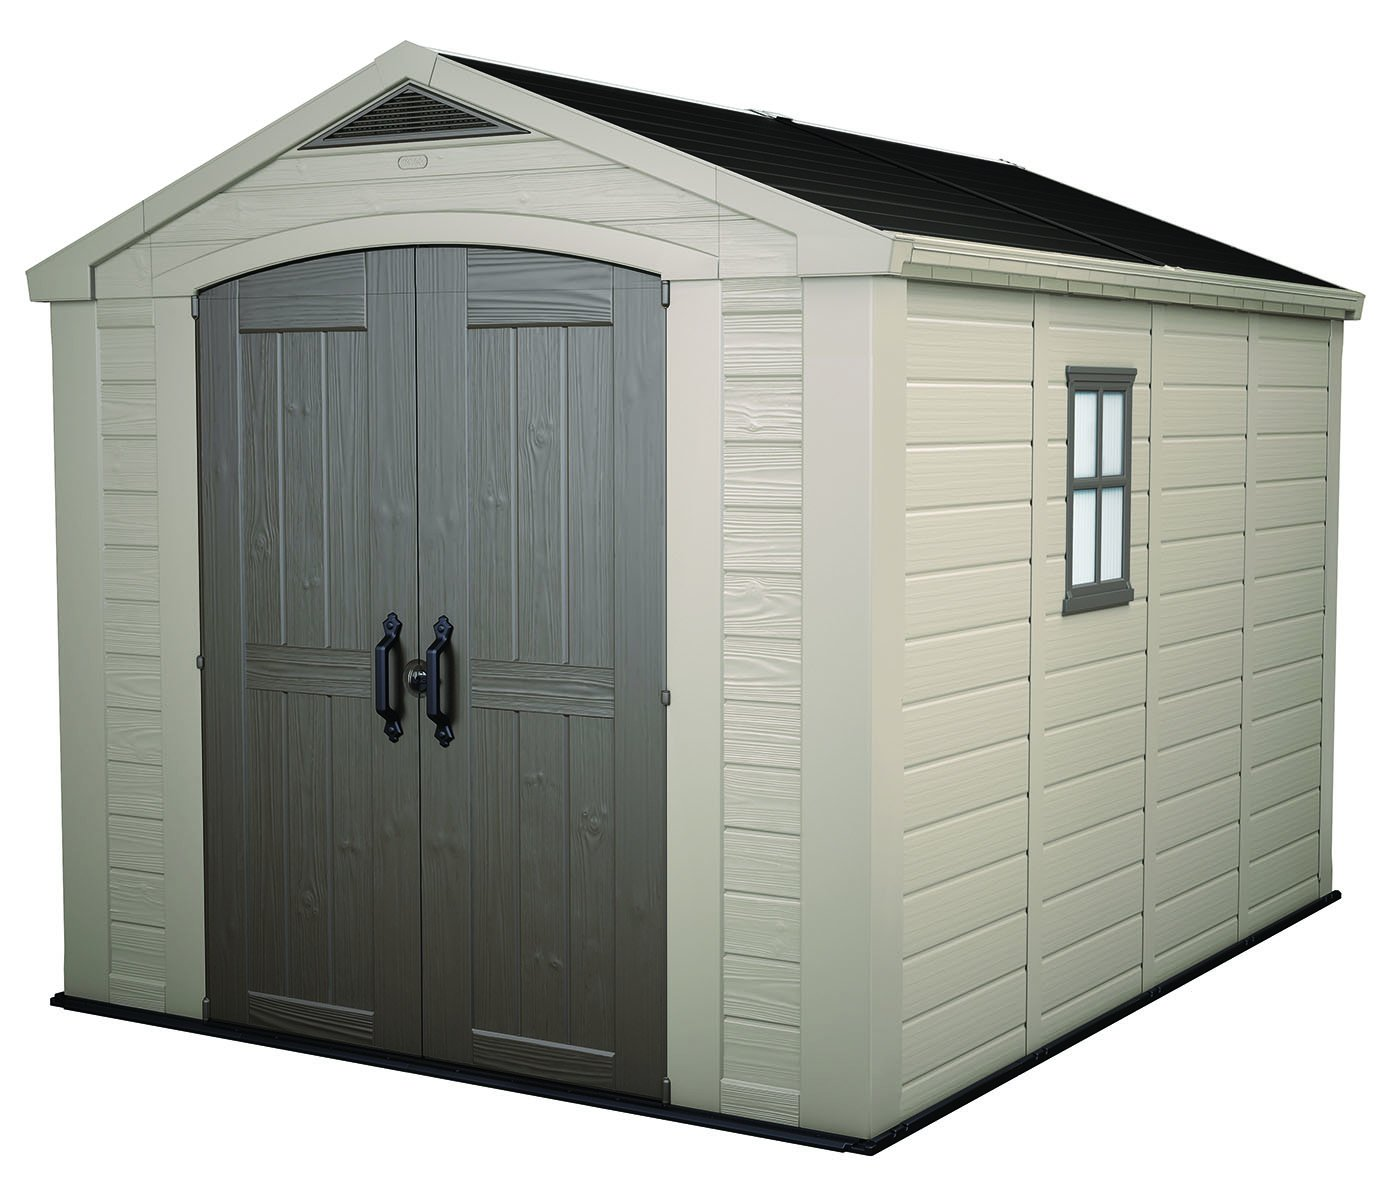 Keter High Store Cheap Keter Great Space High Shed Find Keter Great Space High